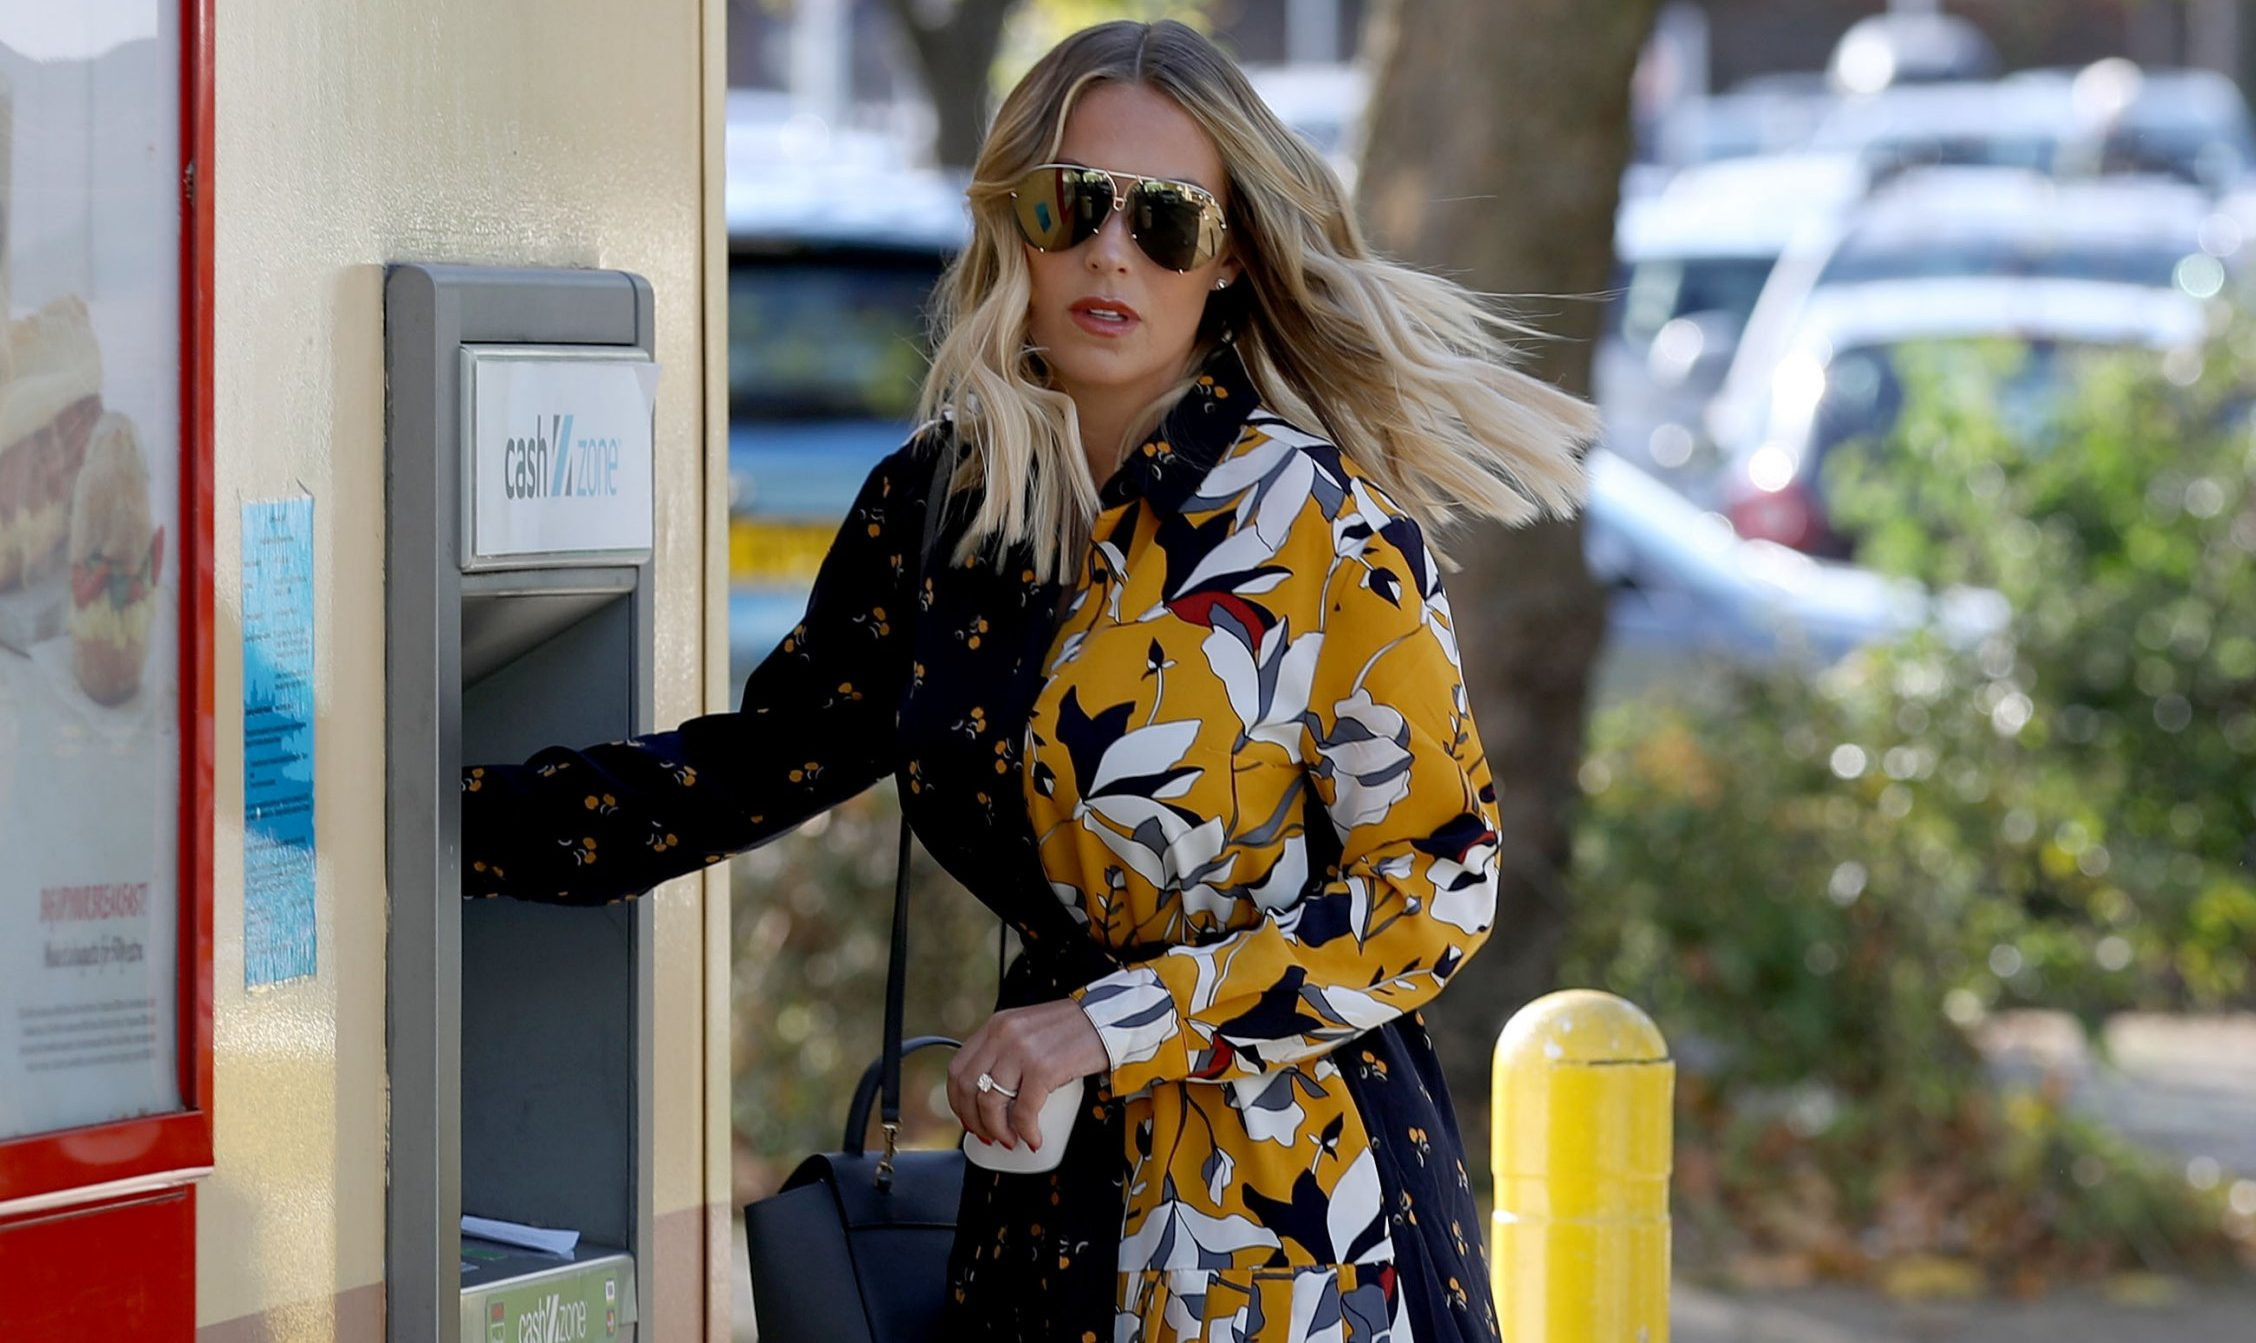 EXCLUSIVE: *NO WEB UNTIL 3PM GMT 5TH NOV* Kate Wright seen showing off her huge diamond engagement ring after fianc?? Rio Ferdinand popped the question earlier this week in Abu Dhabi. Rio has previously been married to Rebecca Ellison who sadly died of cancer in 2015. 03 Nov 2018 Pictured: Kate Wright. Photo credit: MEGA TheMegaAgency.com +1 888 505 6342